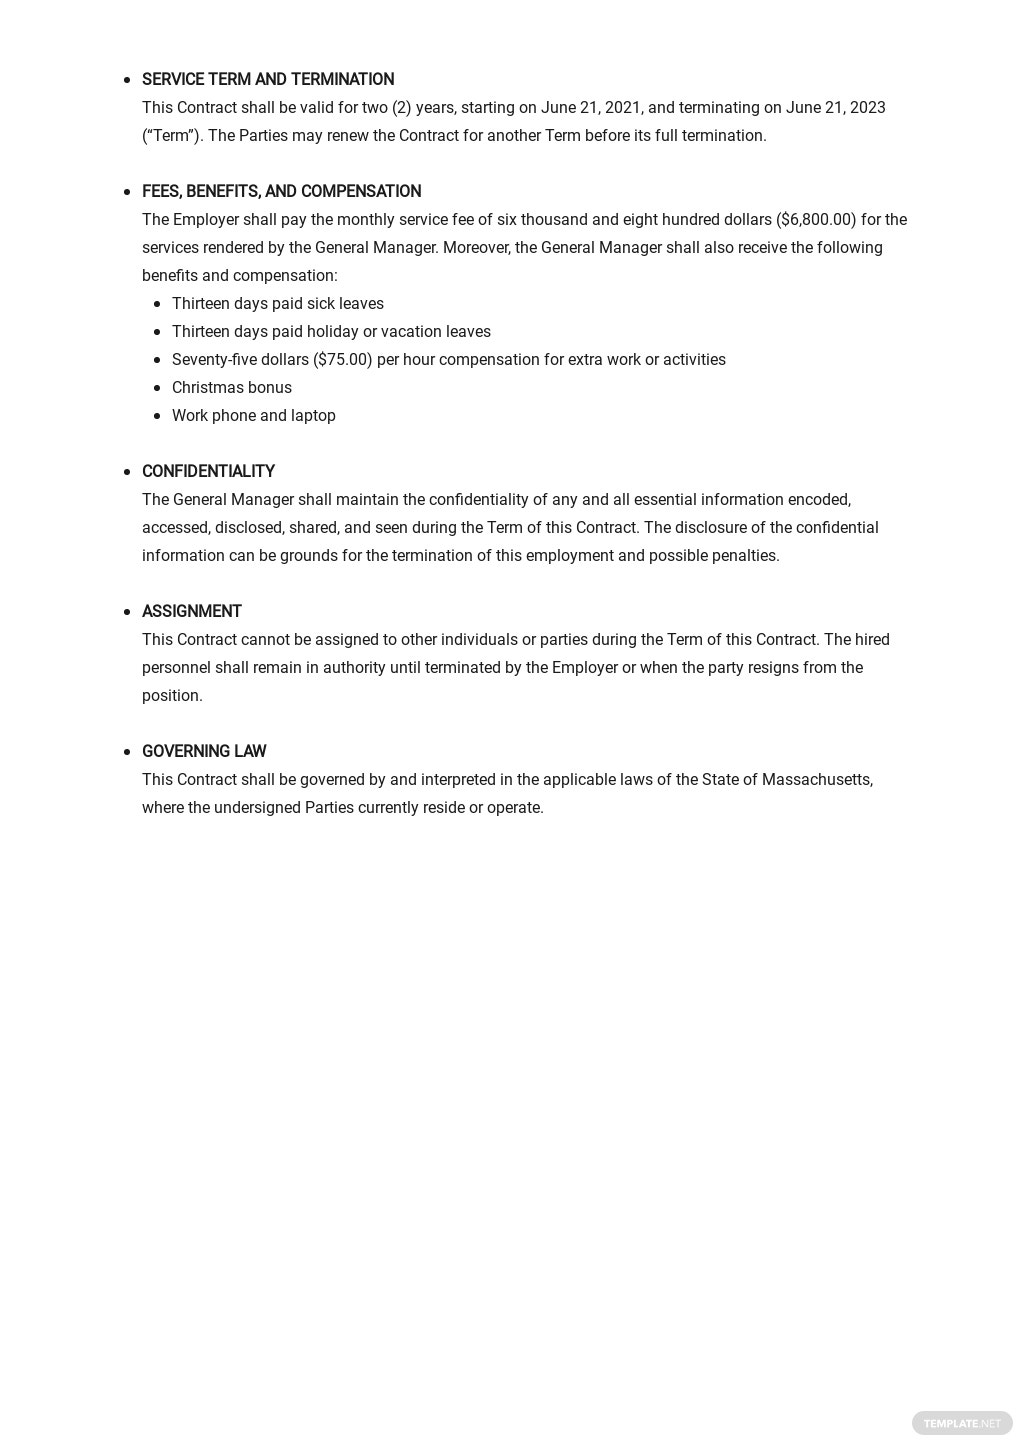 General Manager Employment Contract Template 2.jpe